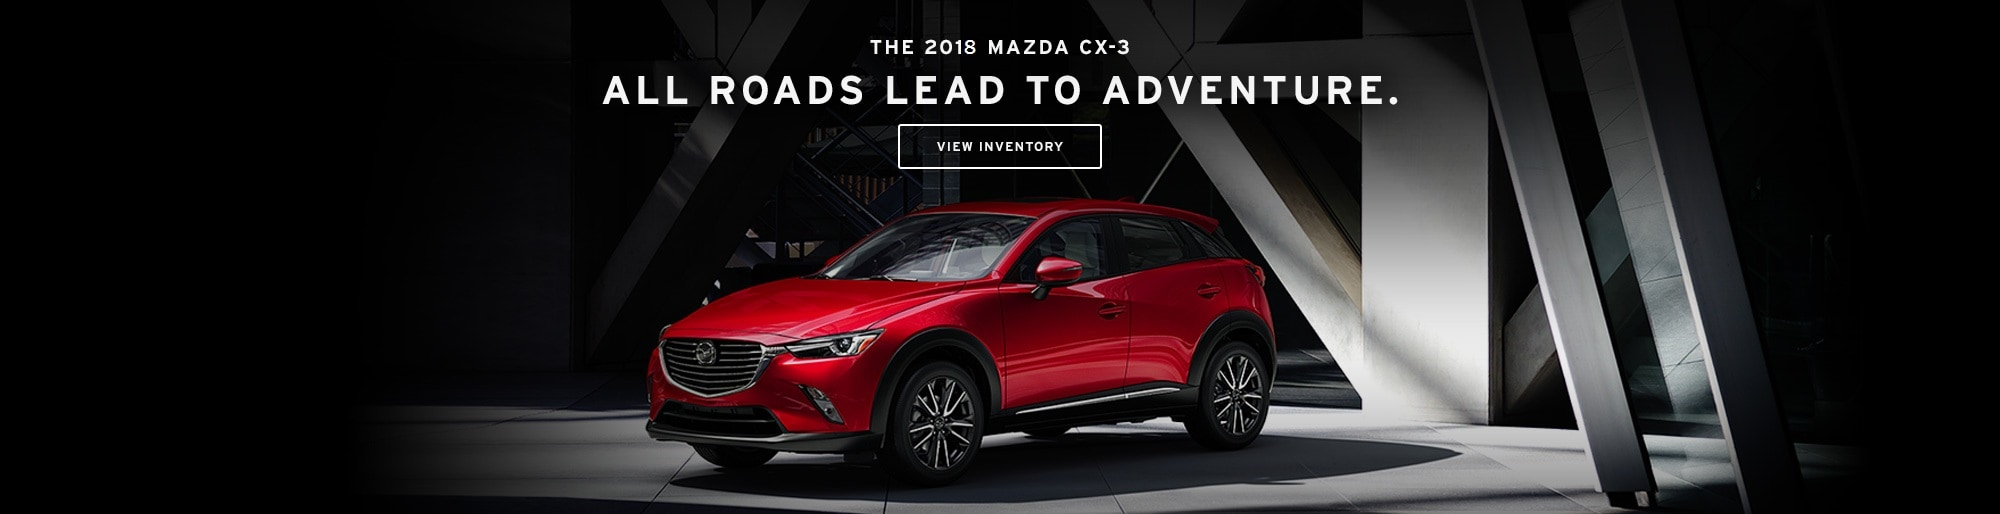 mazda thompson midsize details best car in baltimore htm md research dealers